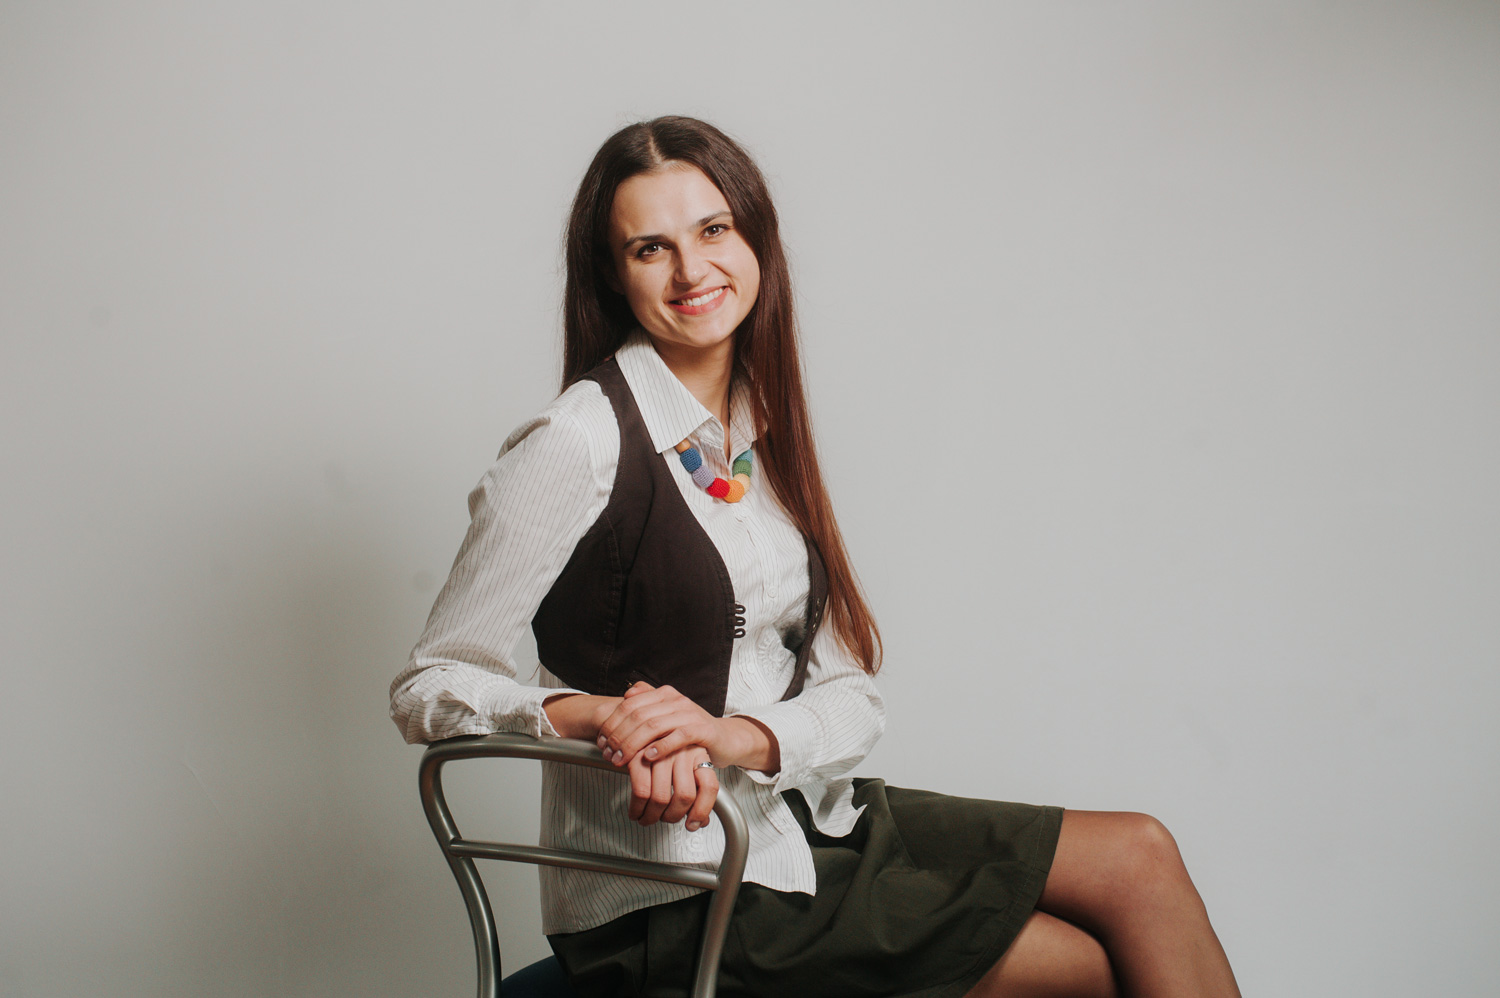 Daria Shileaeva activities: Head of Business Development